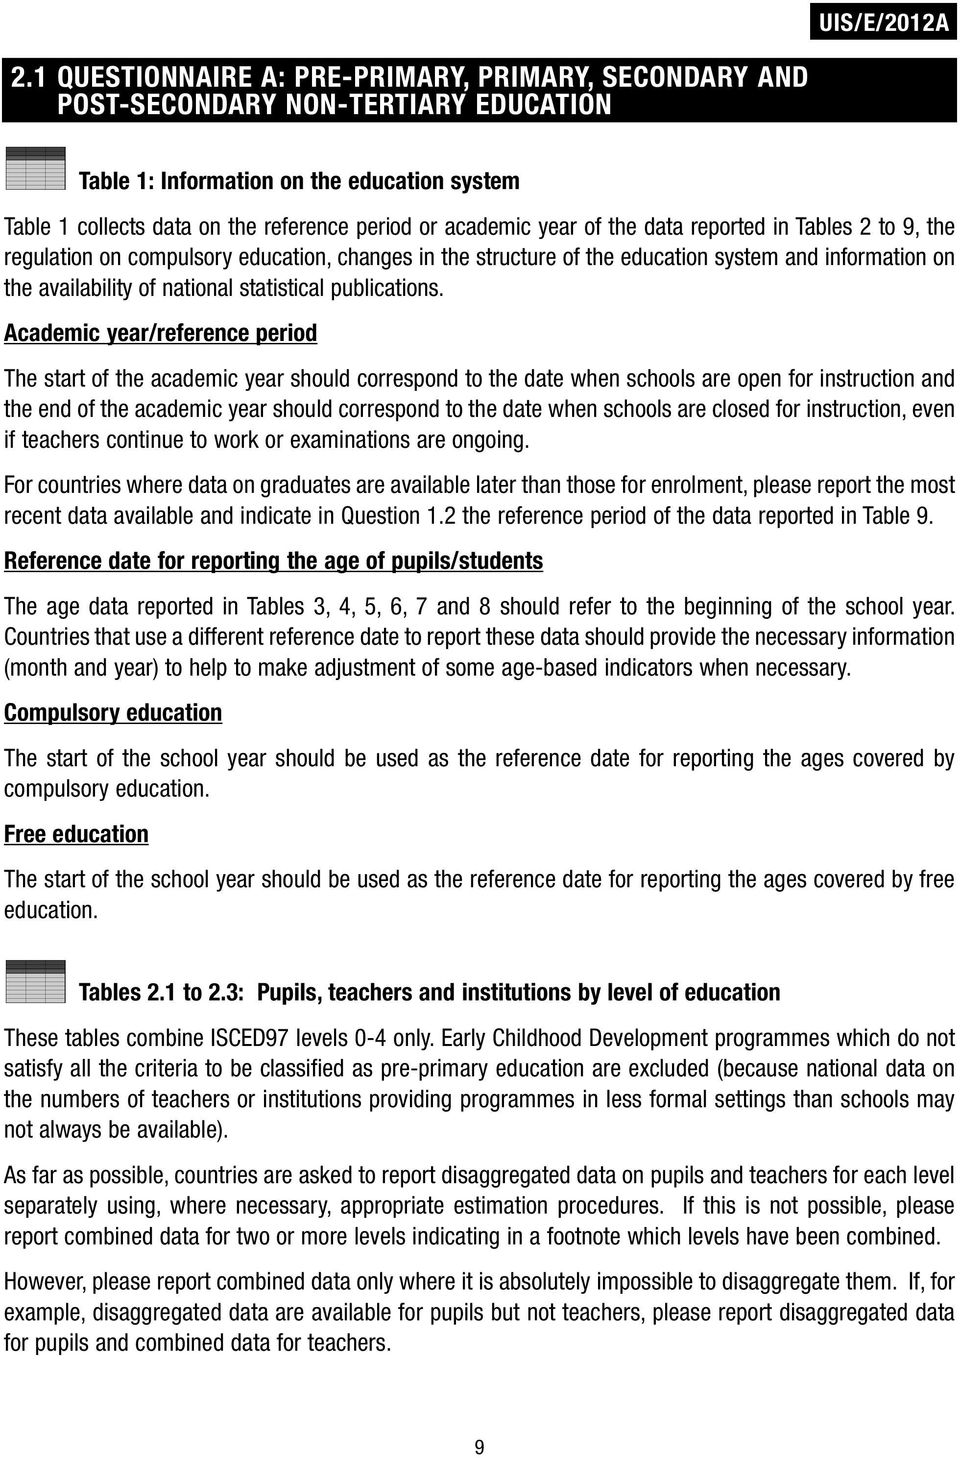 year of the data reported in Tables 2 to 9, the regulation on compulsory education, changes in the structure of the education system and information on the availability of national statistical